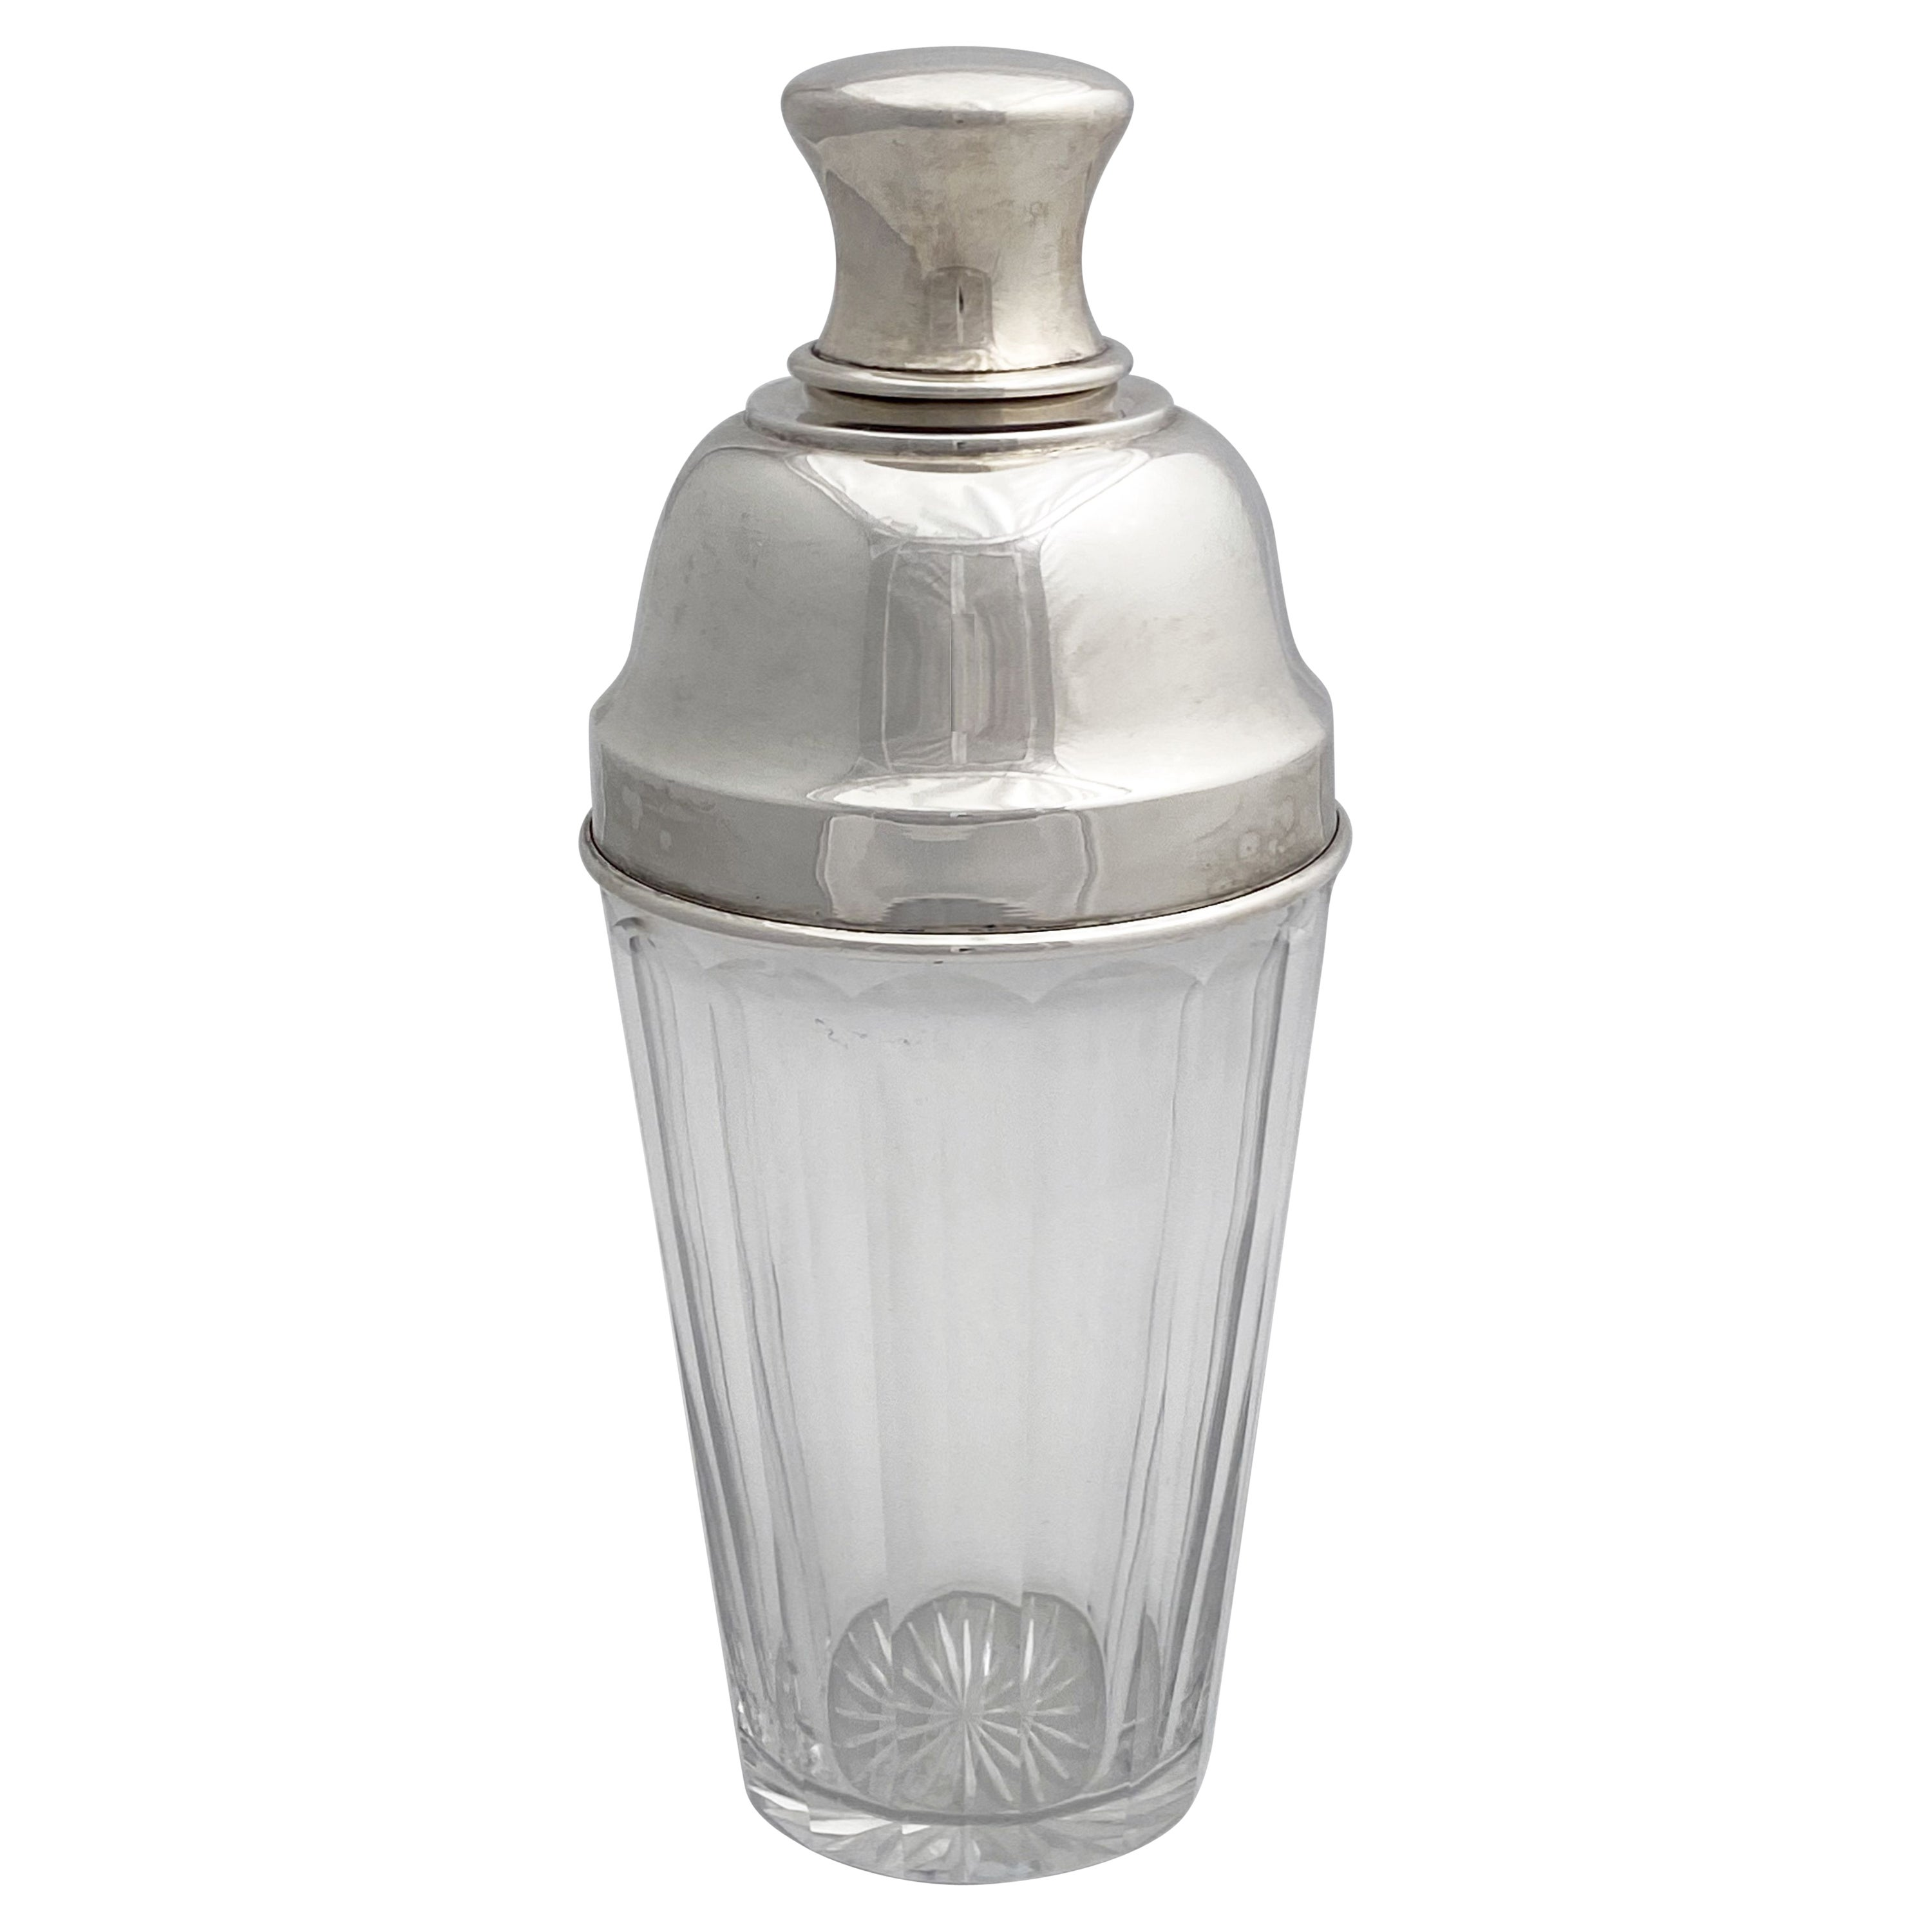 Art Deco Martini or Cocktail Shaker from England